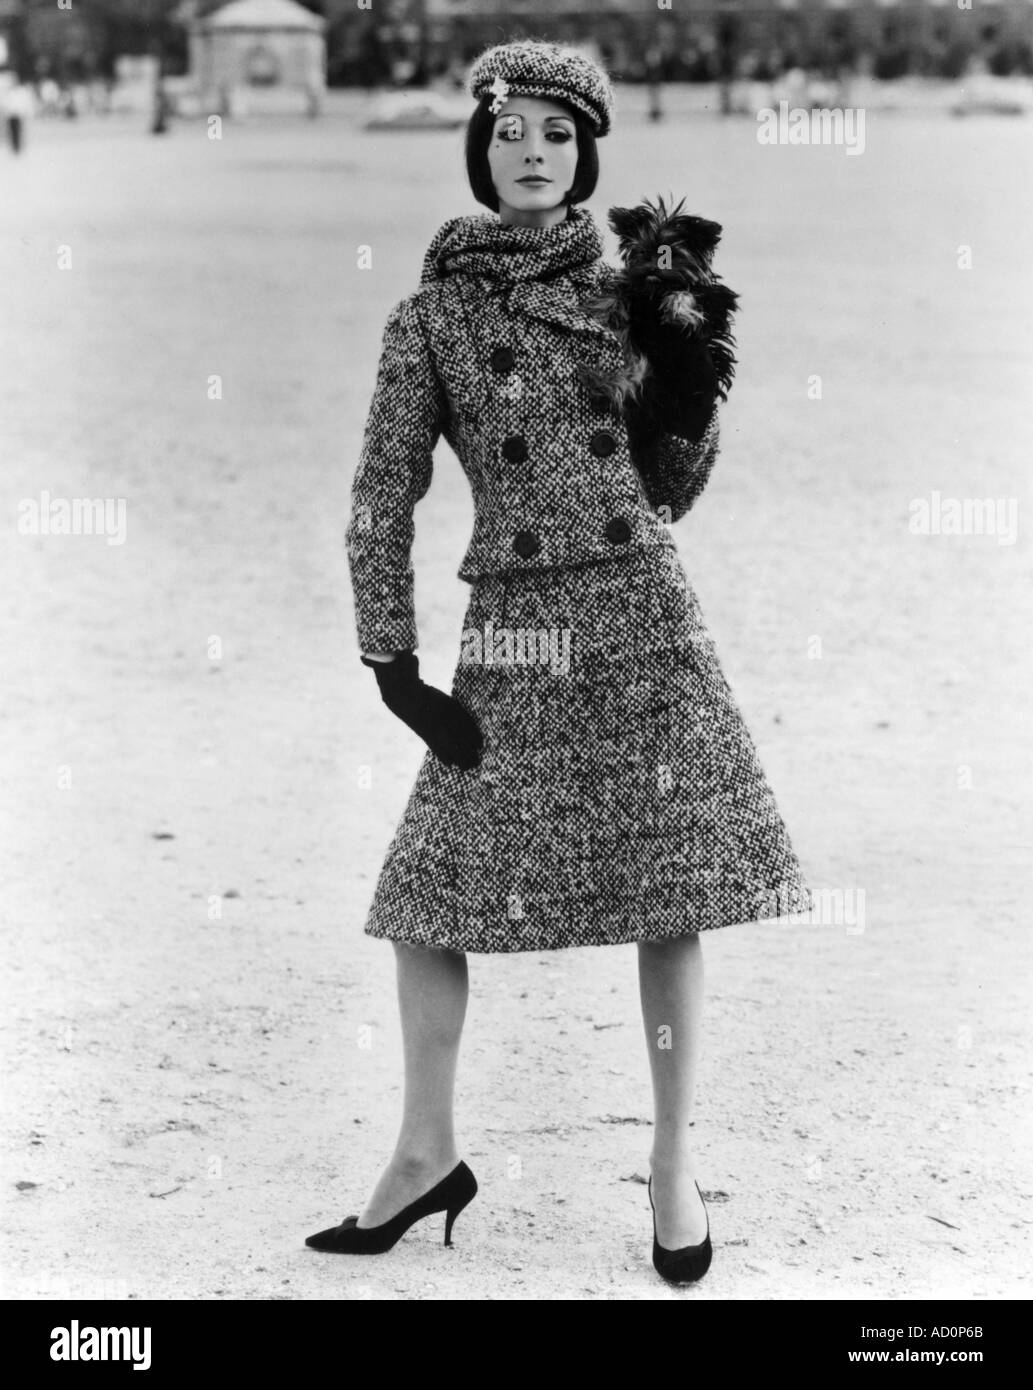 Tweed-Anzug von Christian Dior, Paris. Foto von John French, London, England, 1961. Stockbild